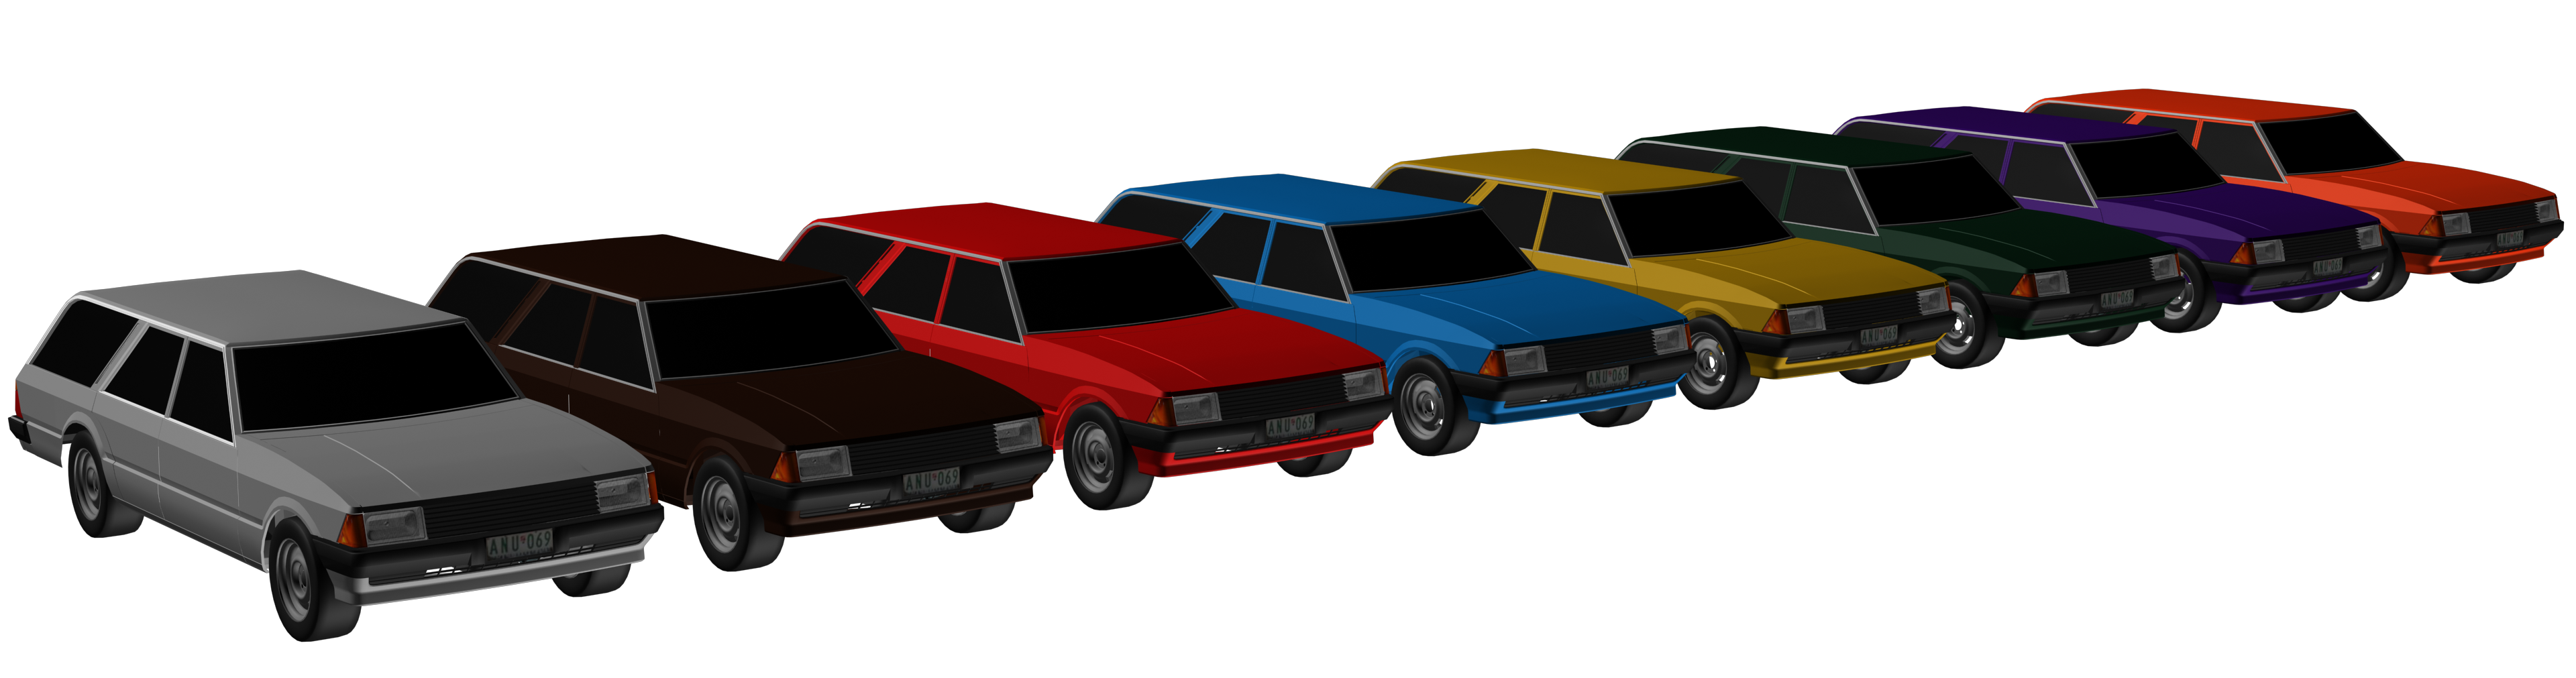 File_78-Wagon_Paint_Render1.png